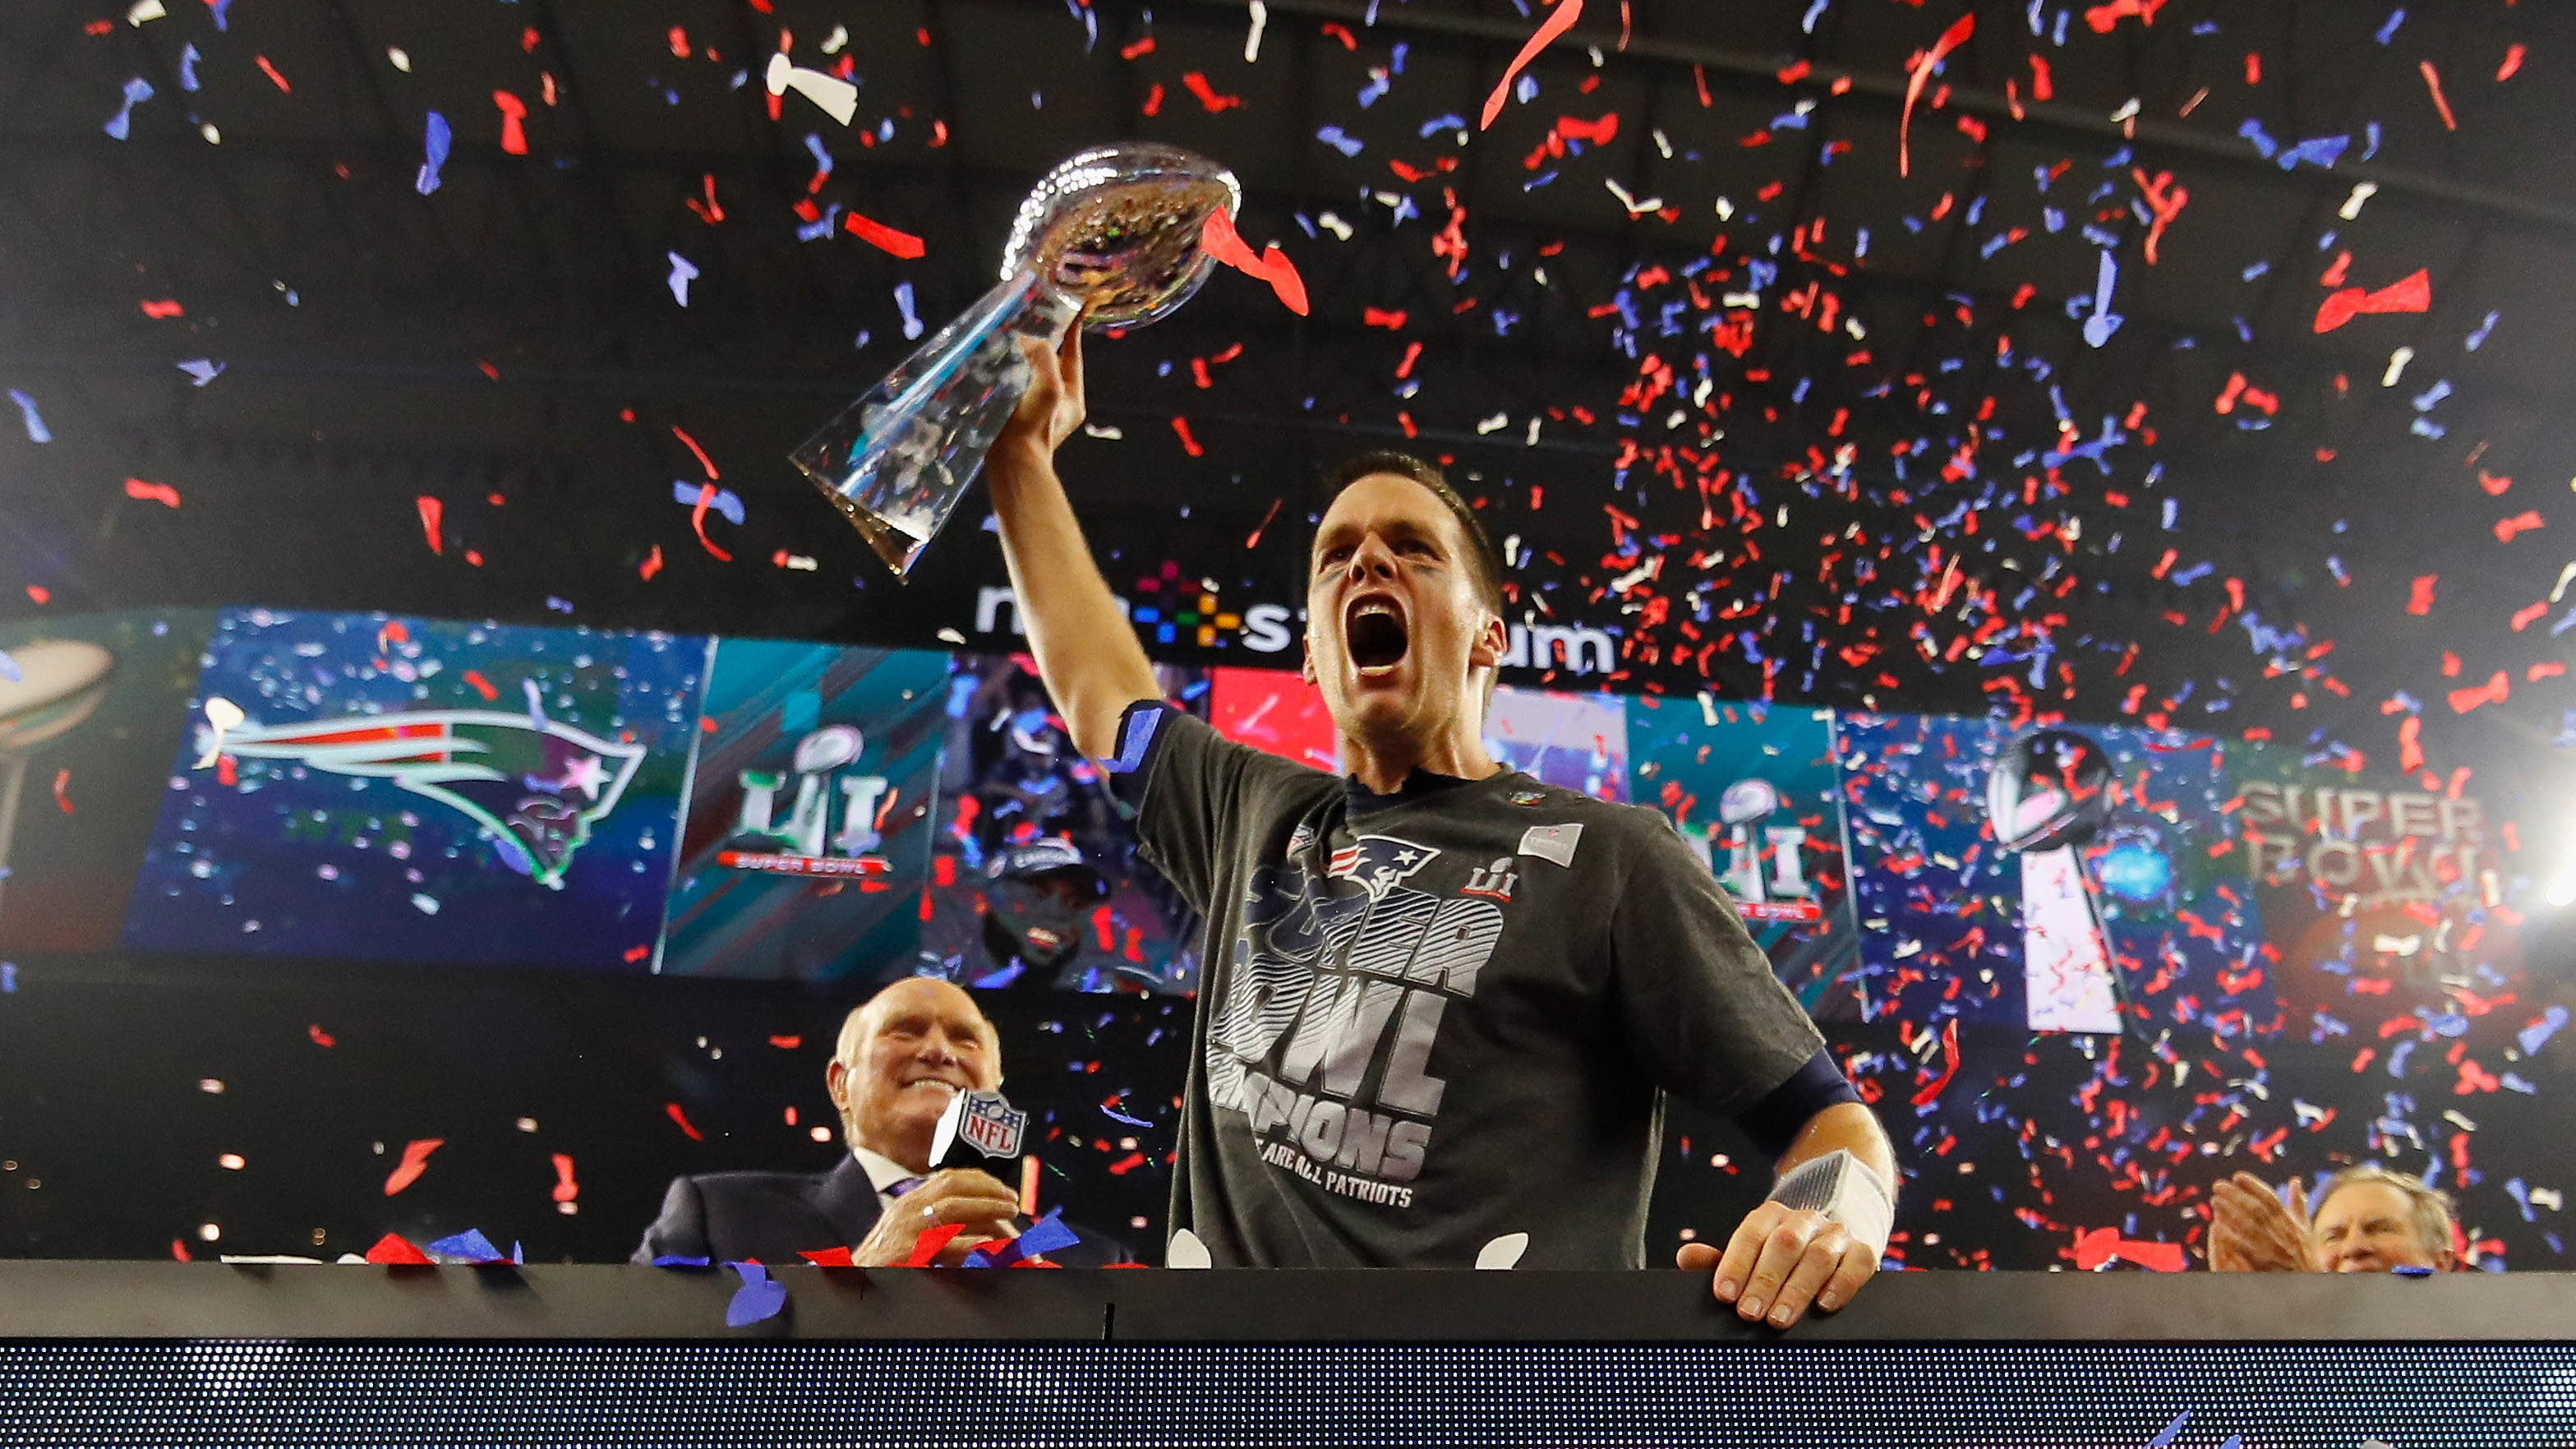 Super Bowl: Scores, winners, results